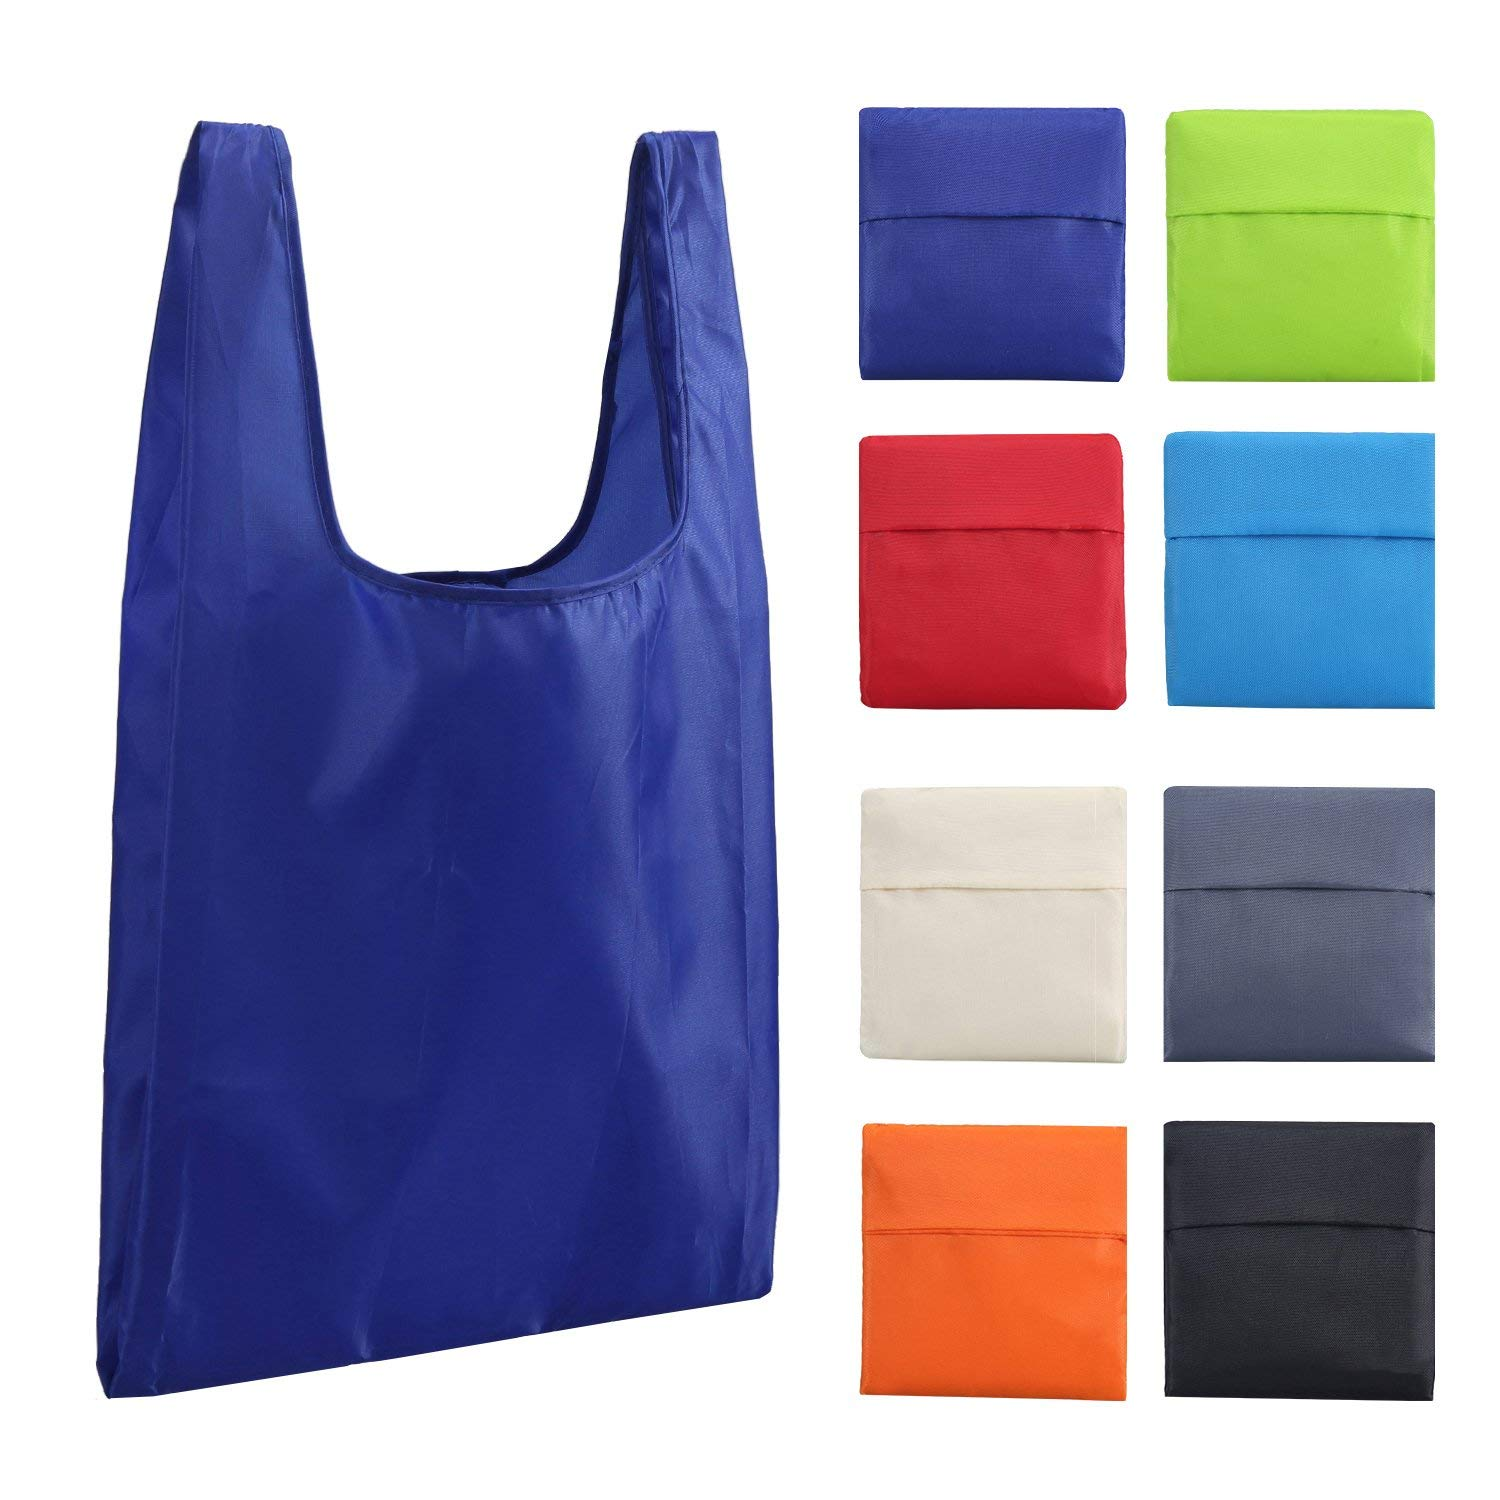 Standard size foldable Good quality eco printing reusable nylon shopping tote bag